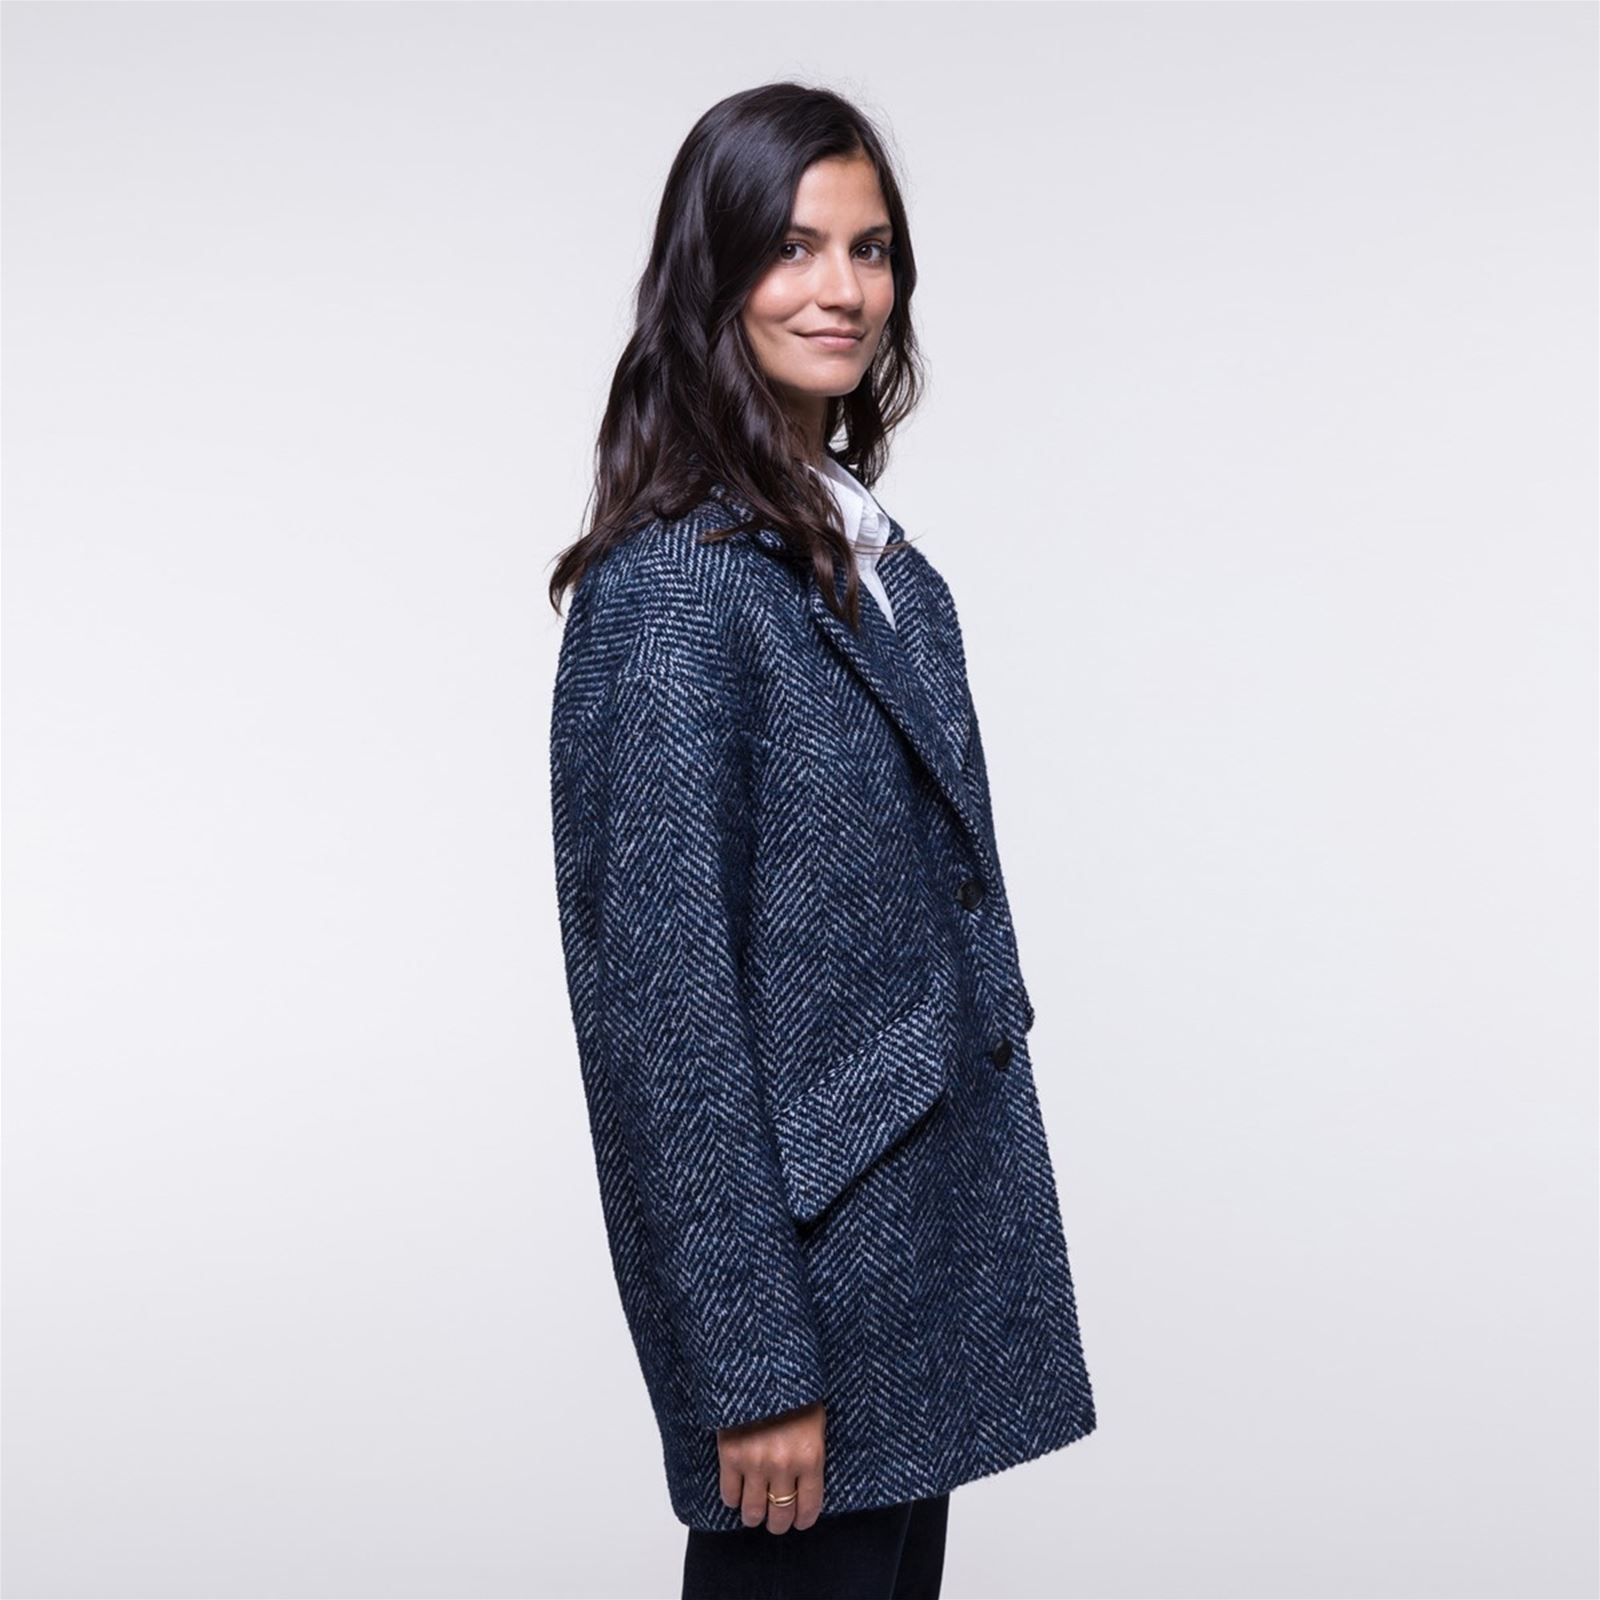 Manteau 62laine Trench boucl Coat And I Oversize N0PknOZ8wX